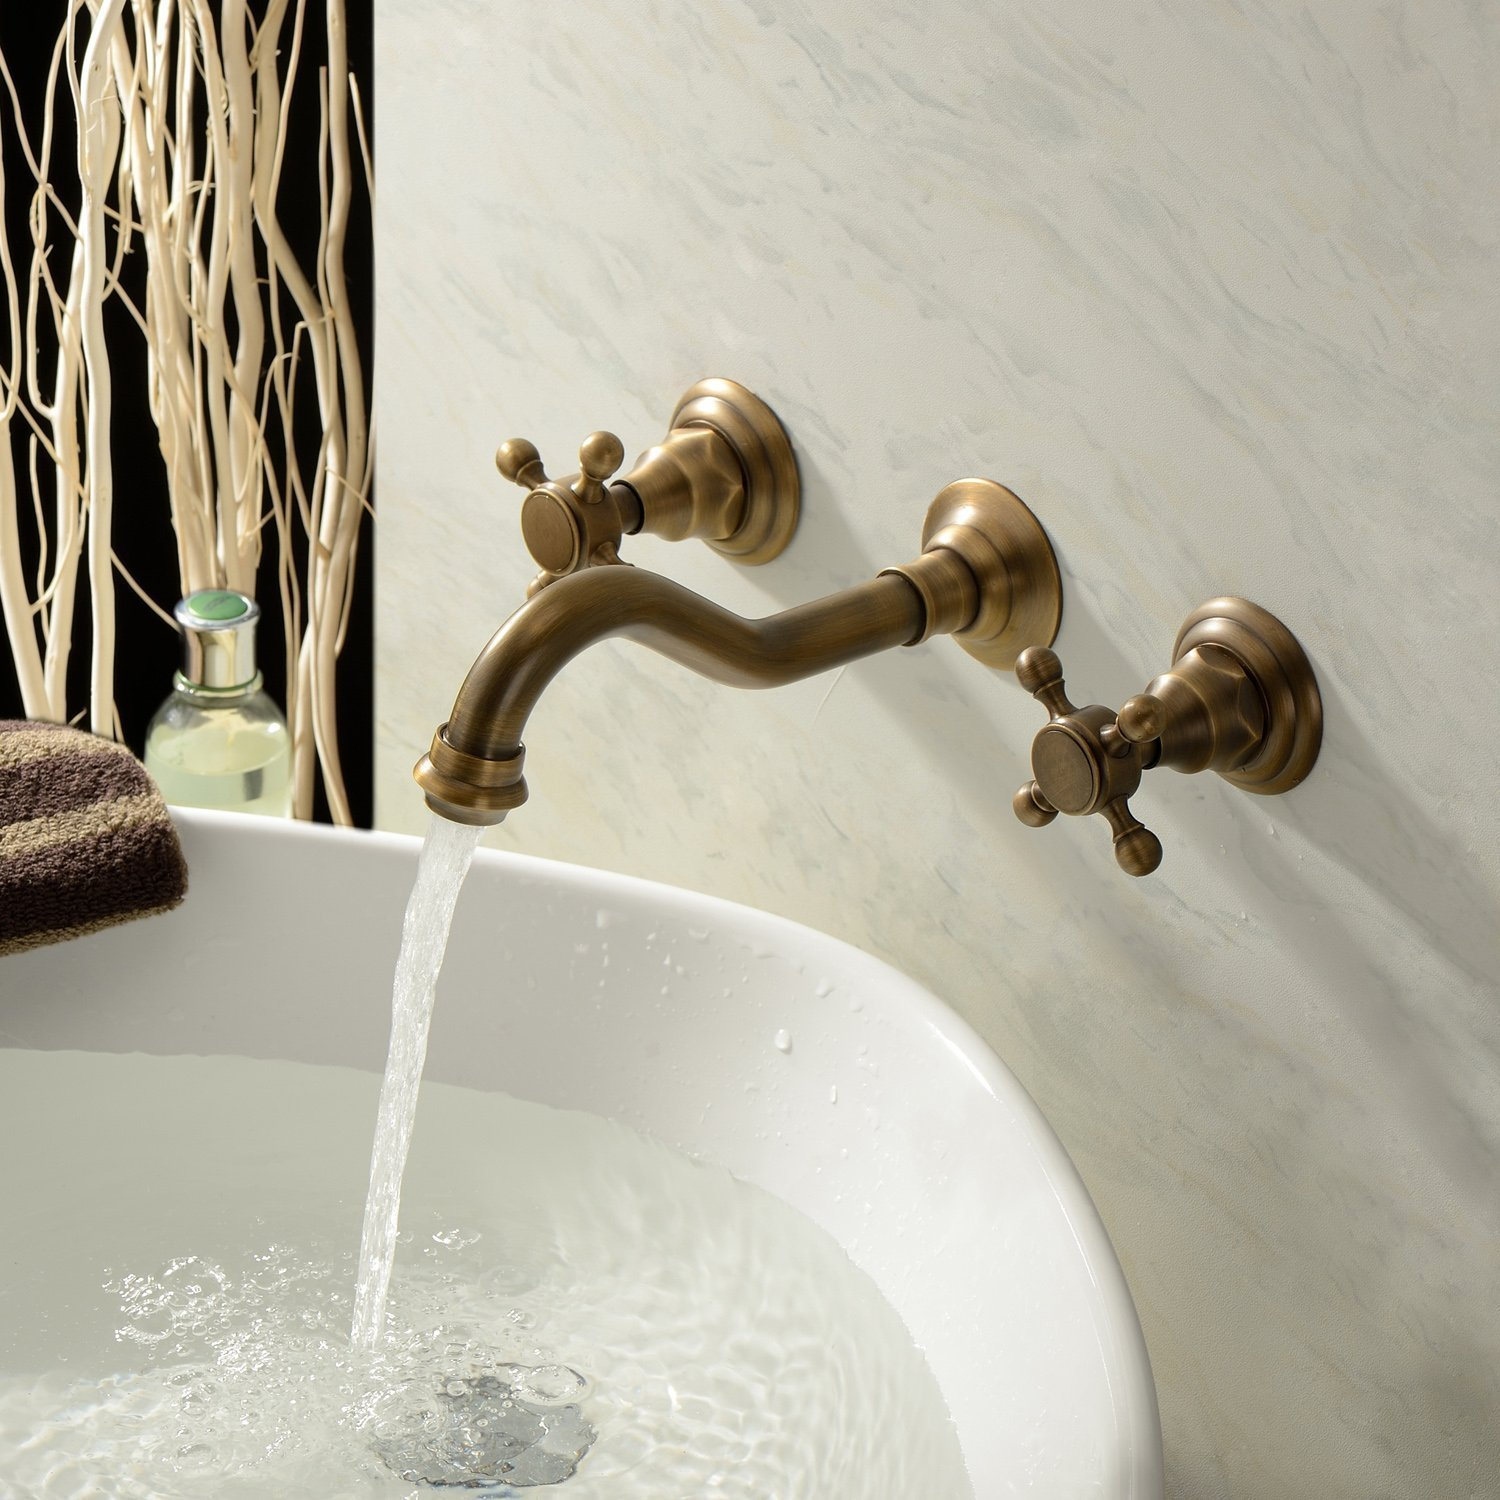 taps sale utility laundry antique top product faucets water single faucet and shower brass cold bathroom